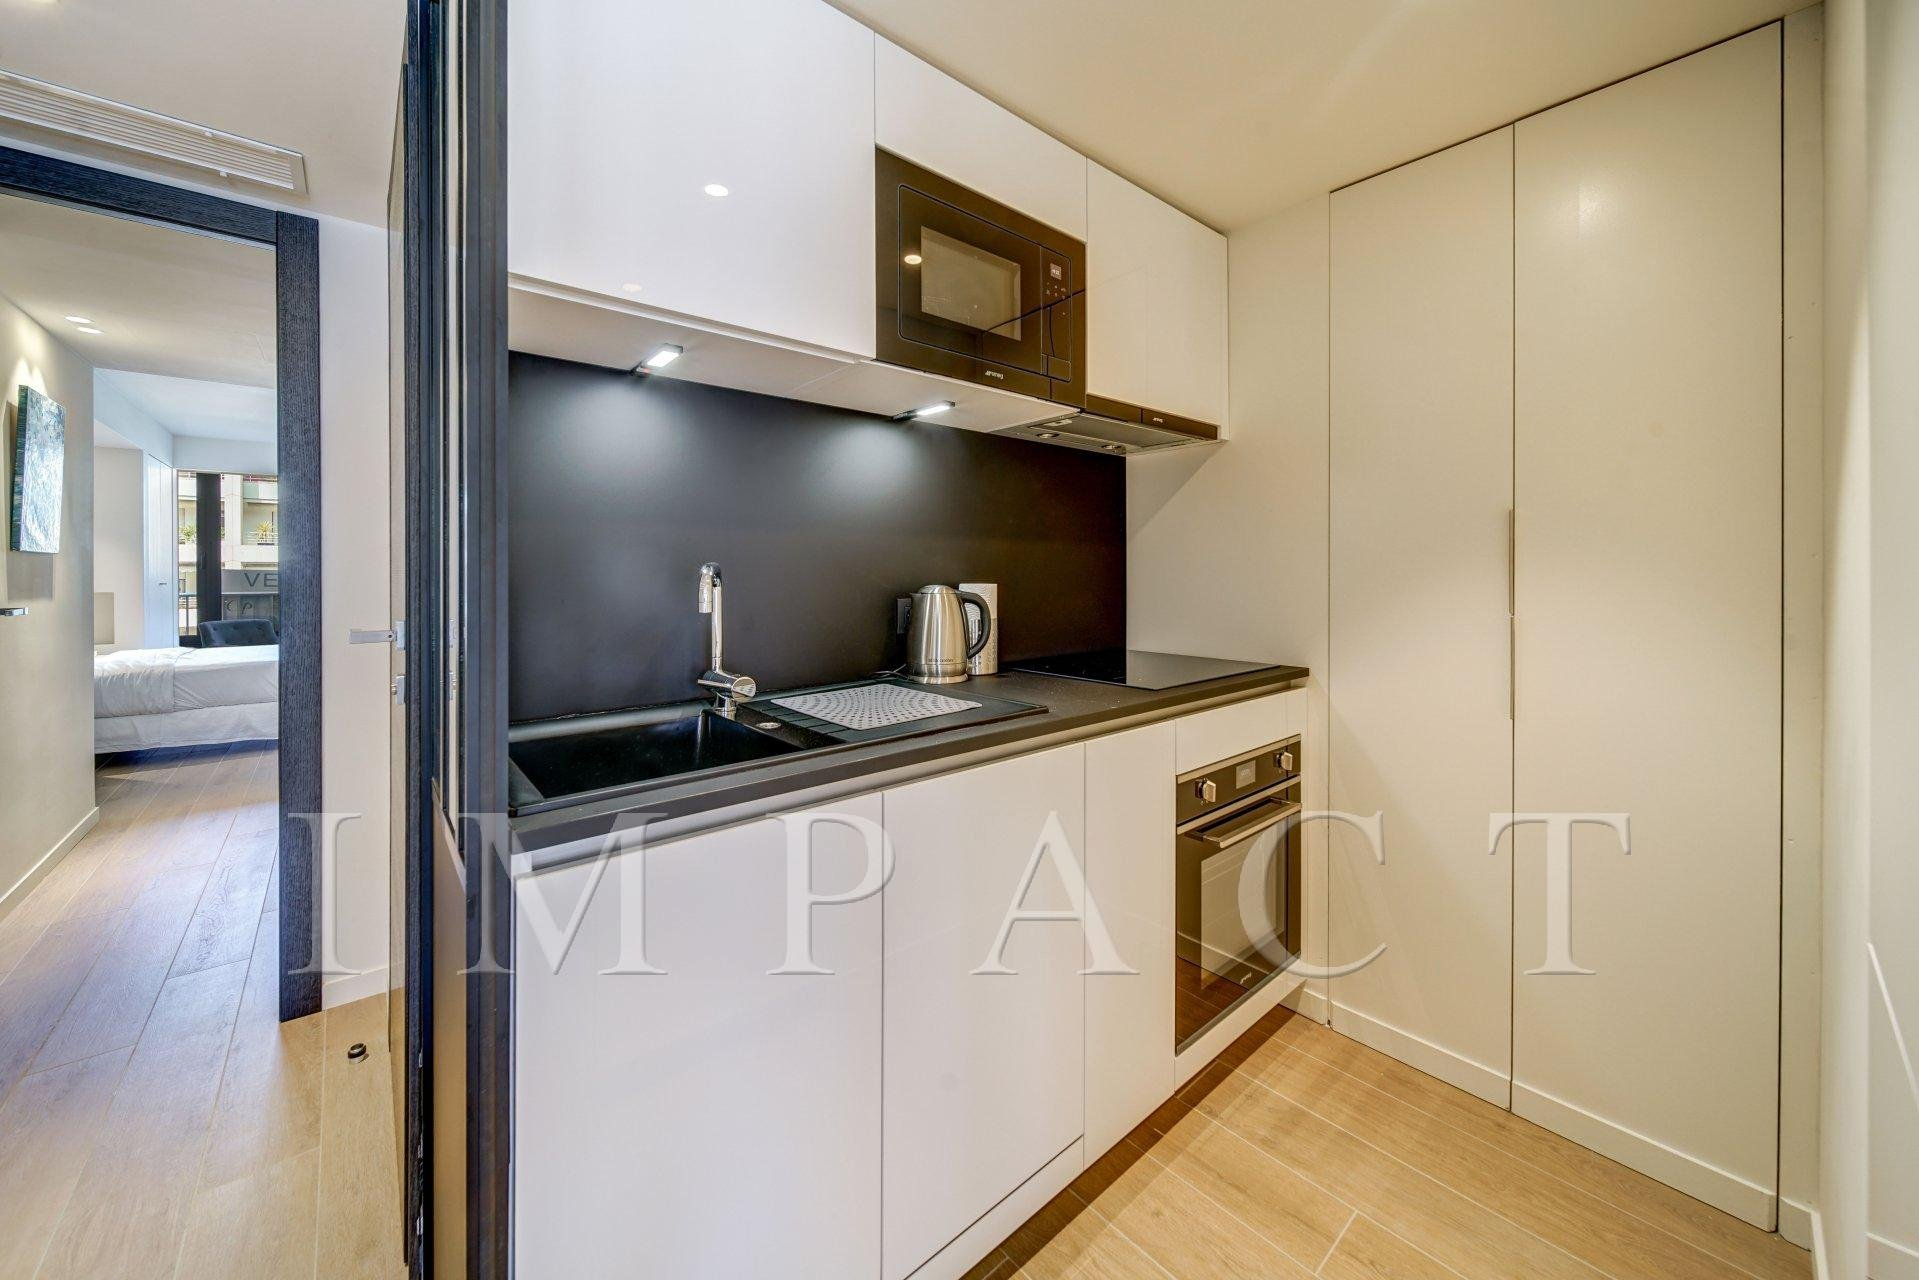 Apartment to rent, Palm Beach, Cannes